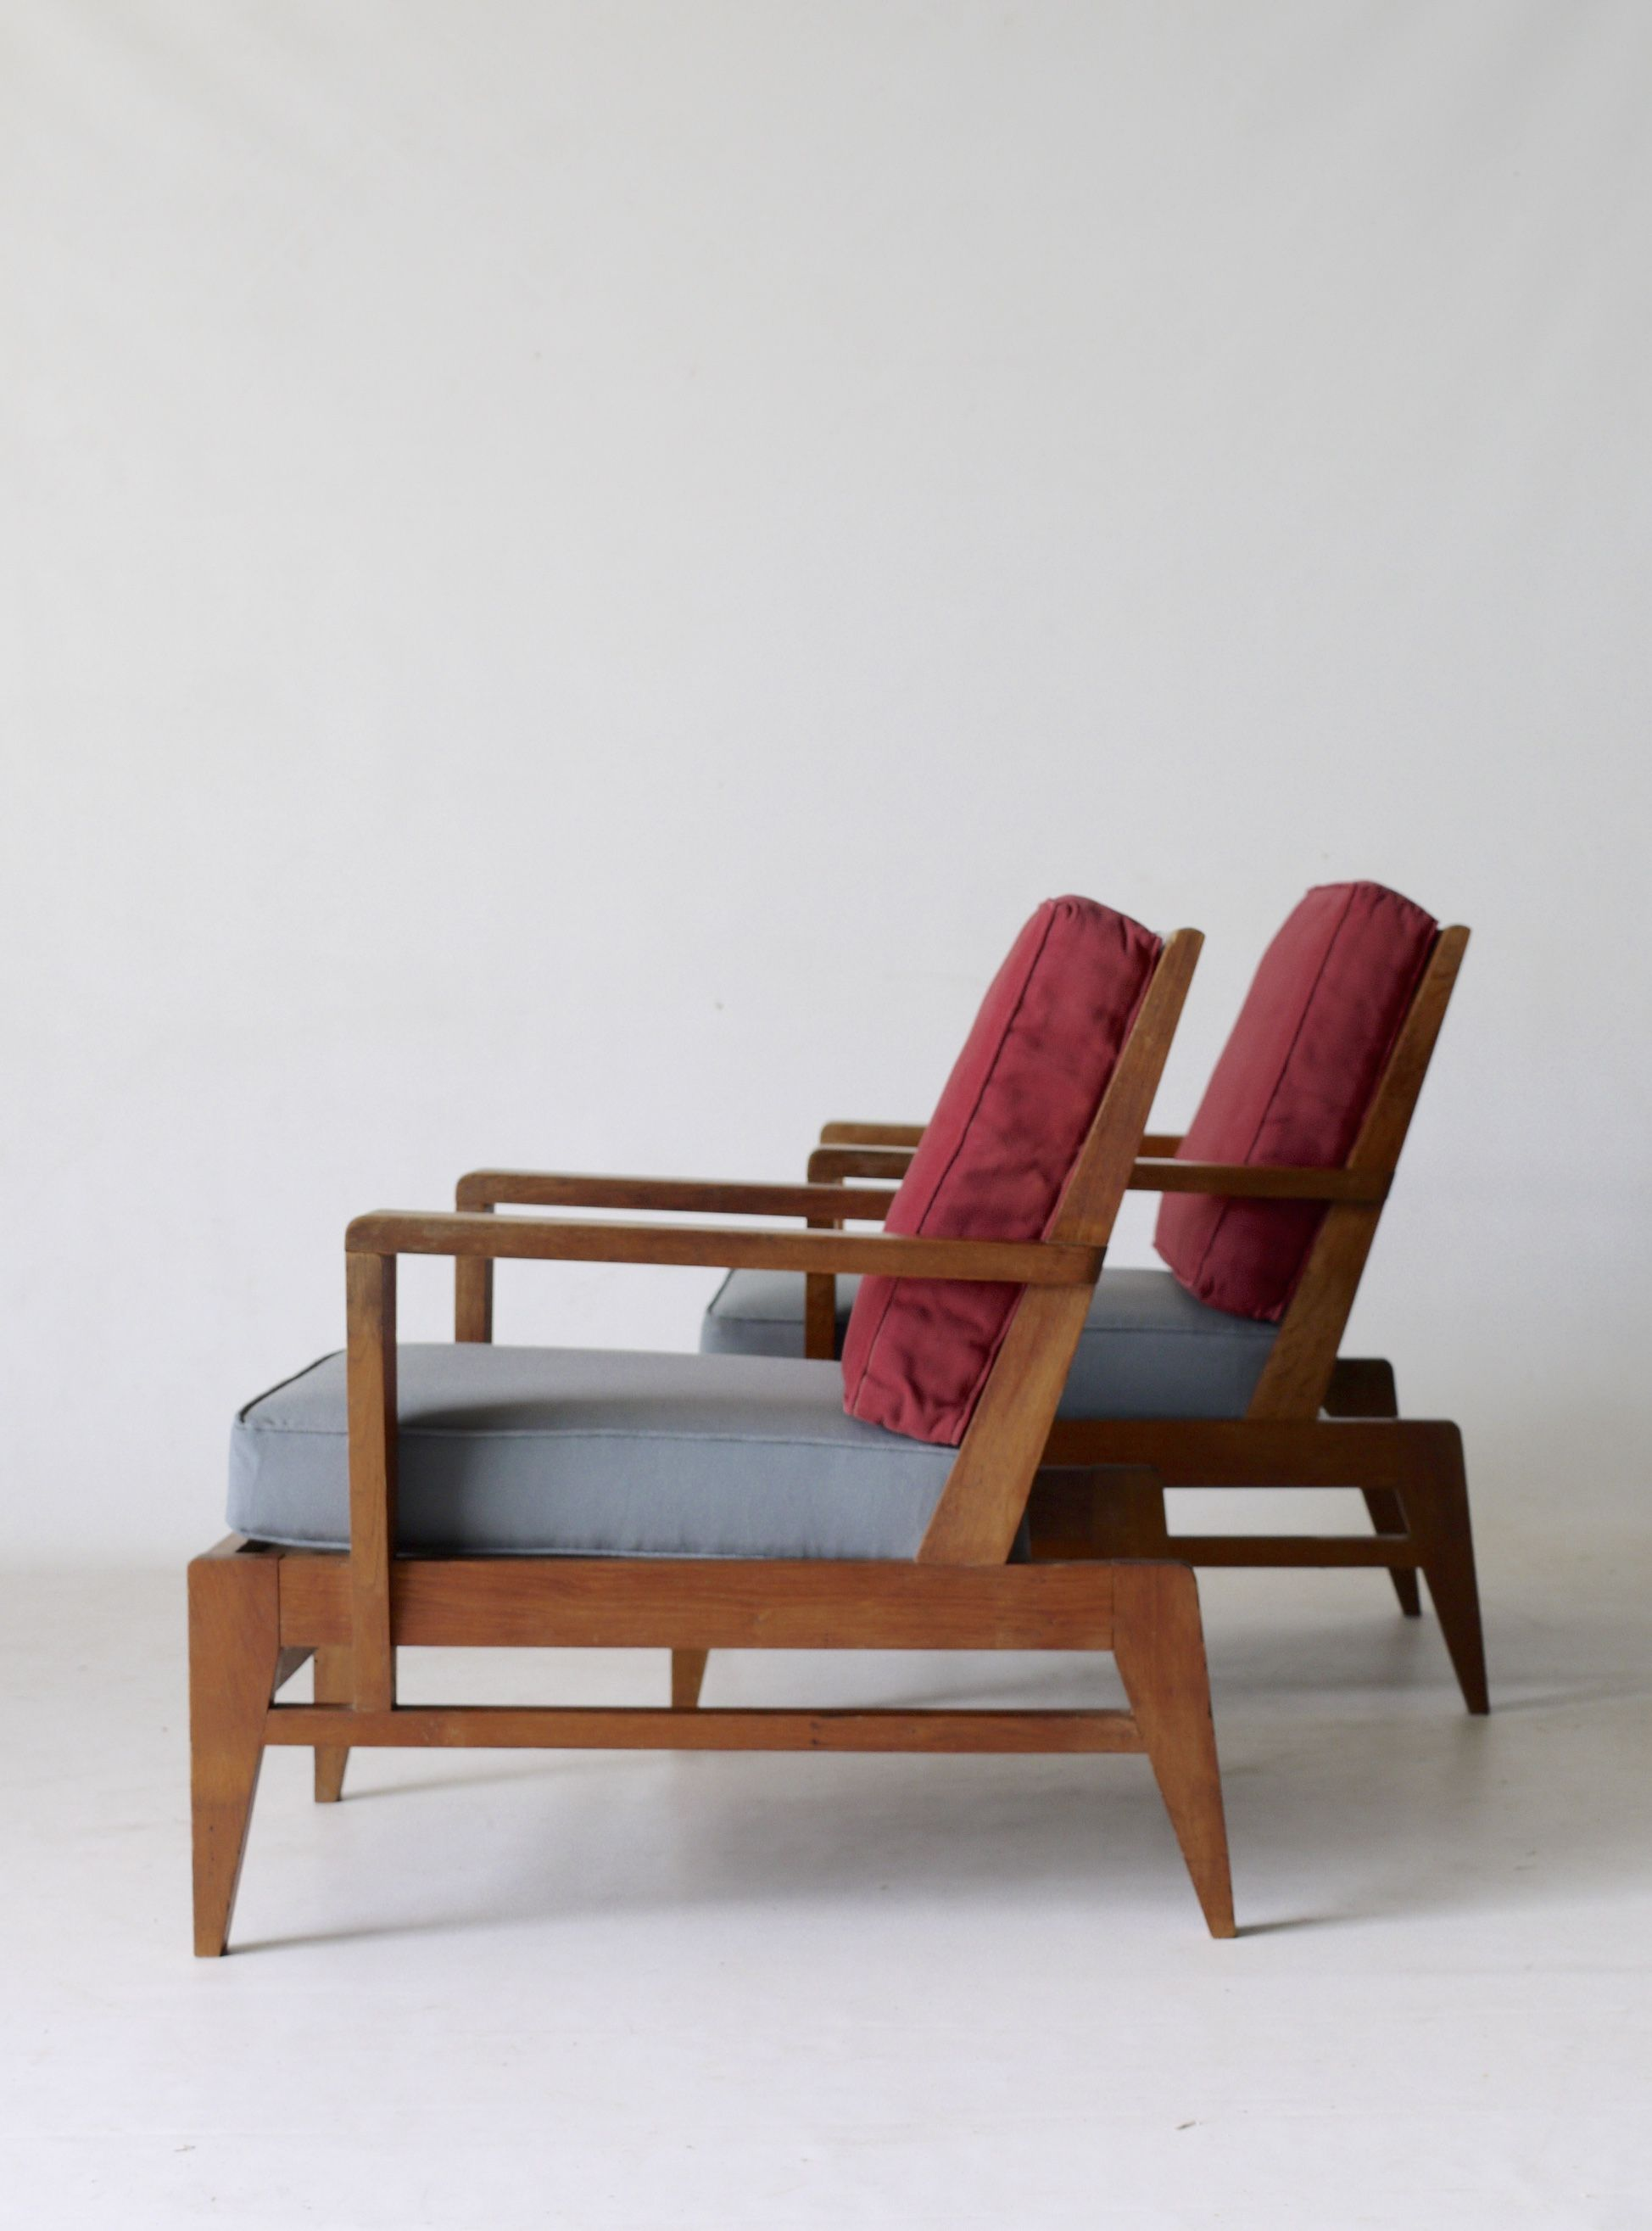 Rene gabriel french modernist oak armchairs 1940s 50s available at merzbau